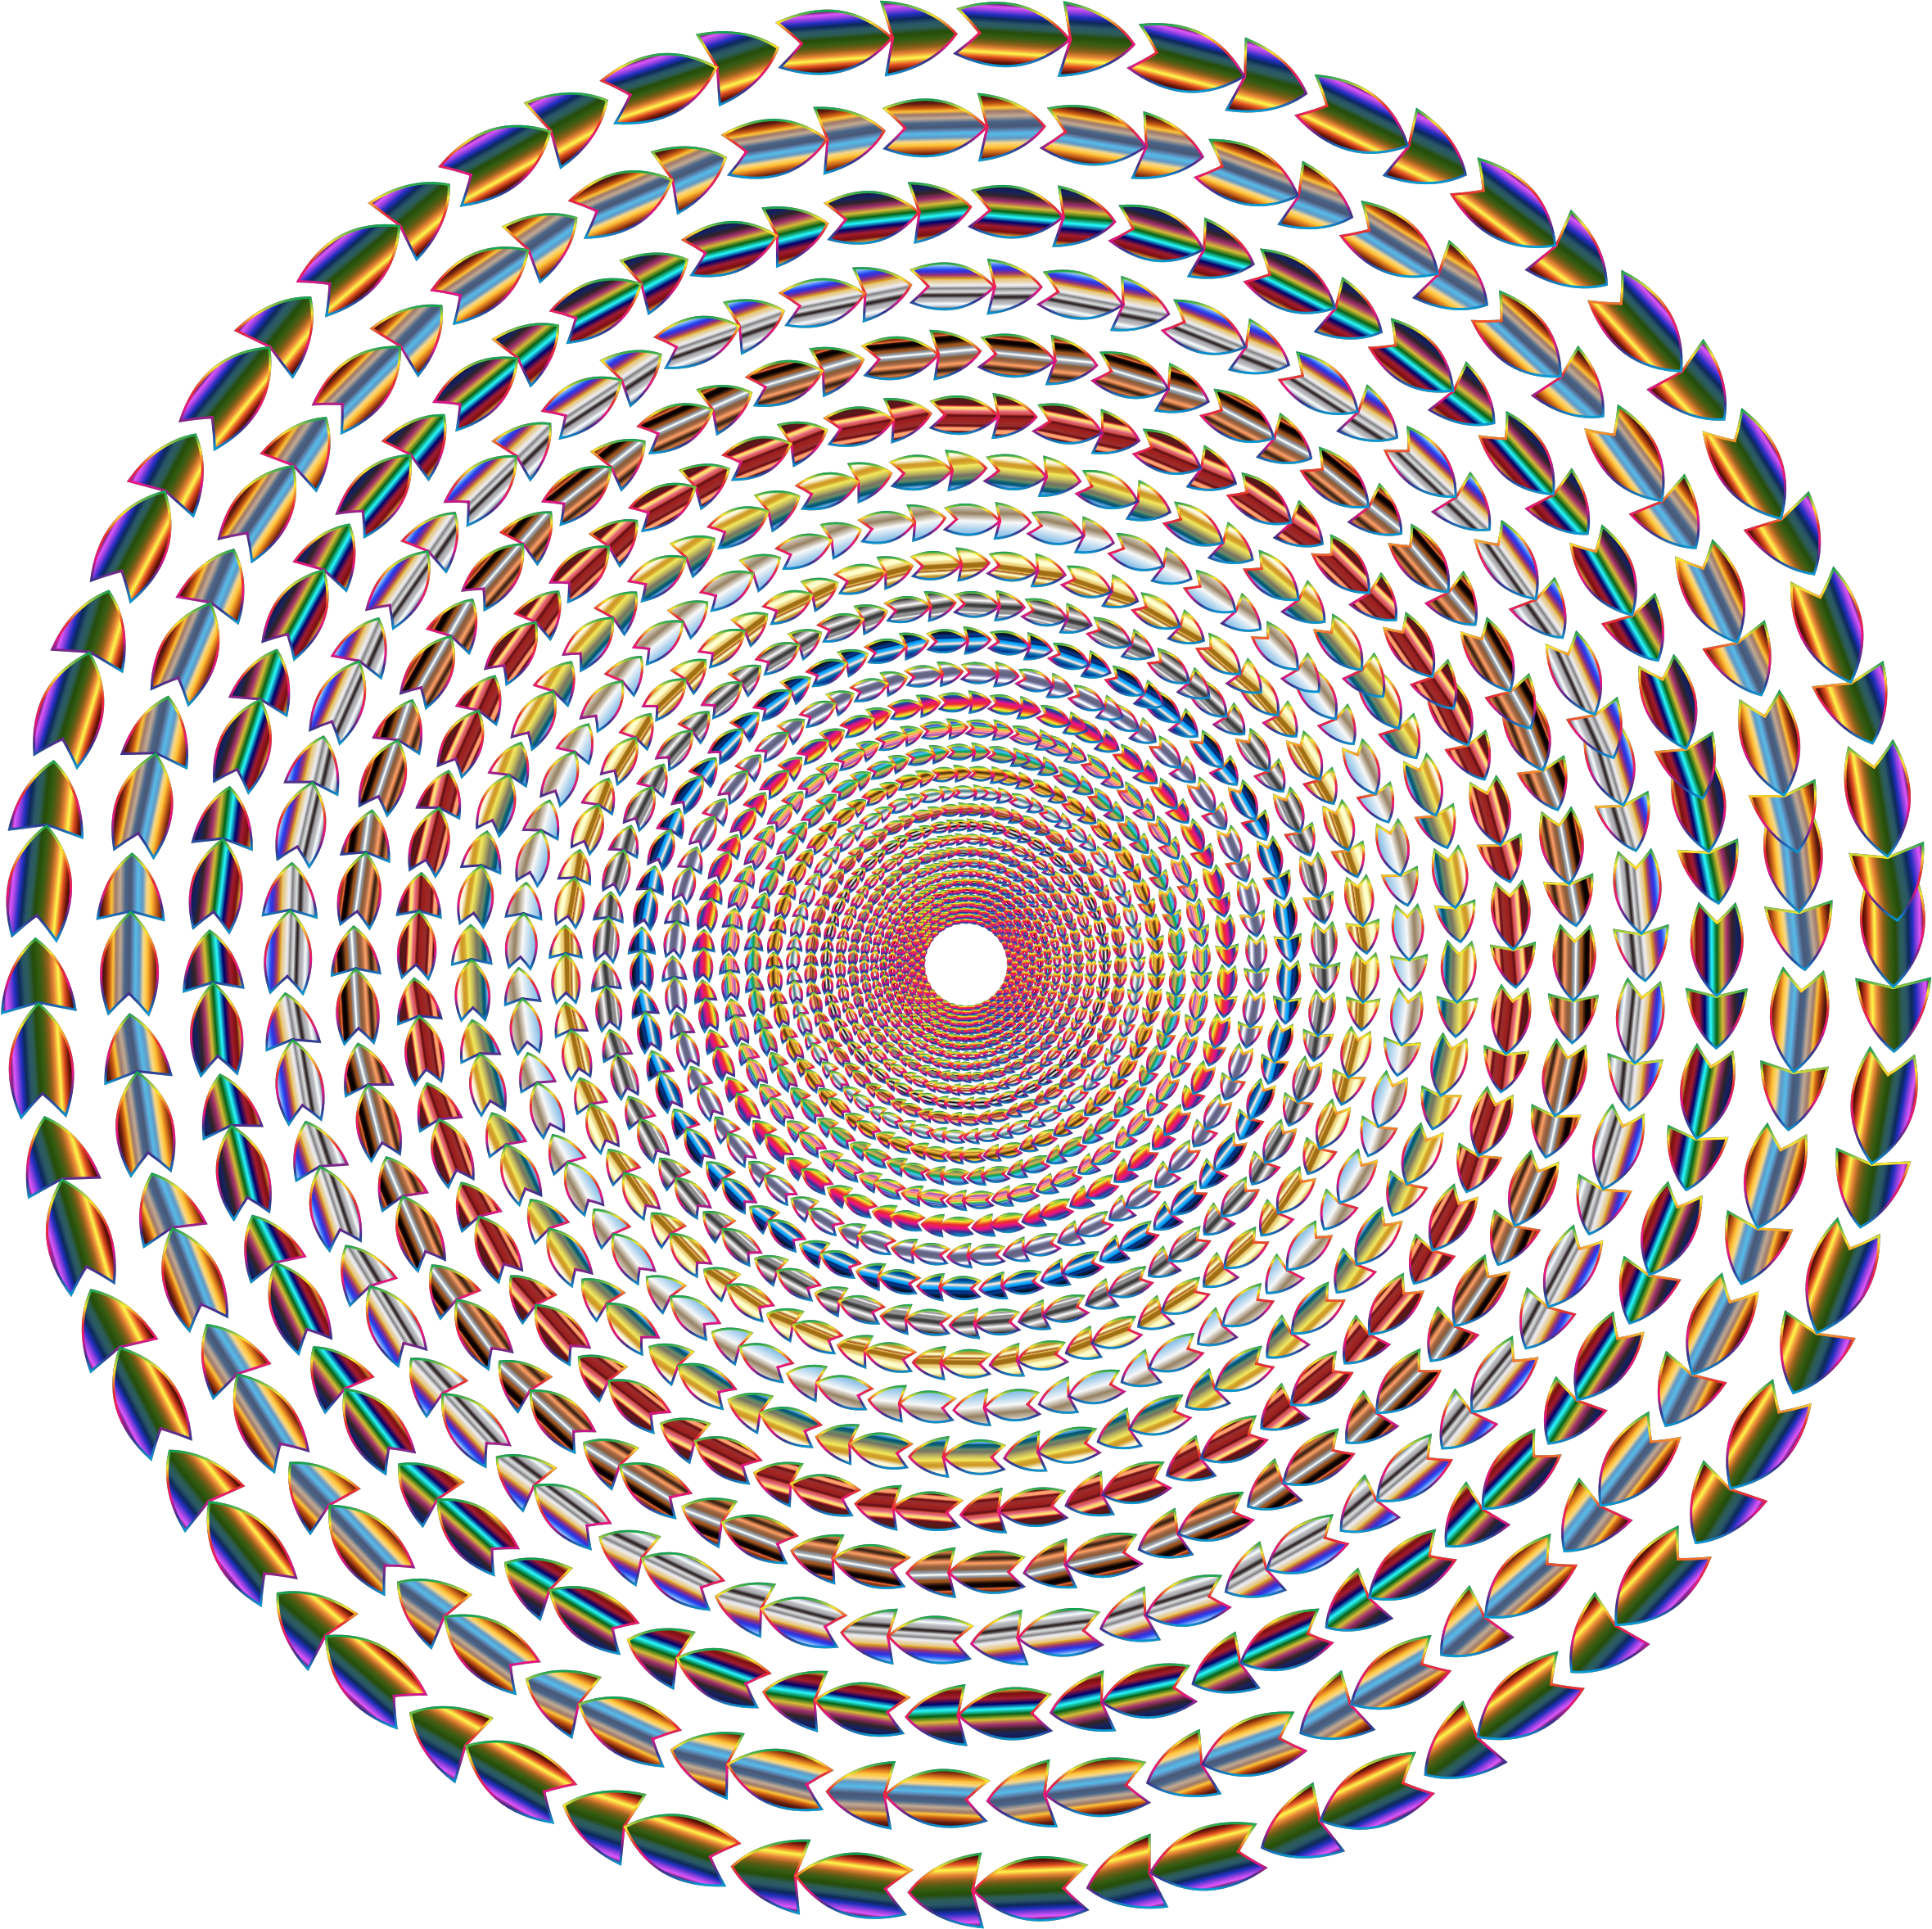 Polychromatic Colorful Direction Circle Vortex Variation 2 No Background by GDJ